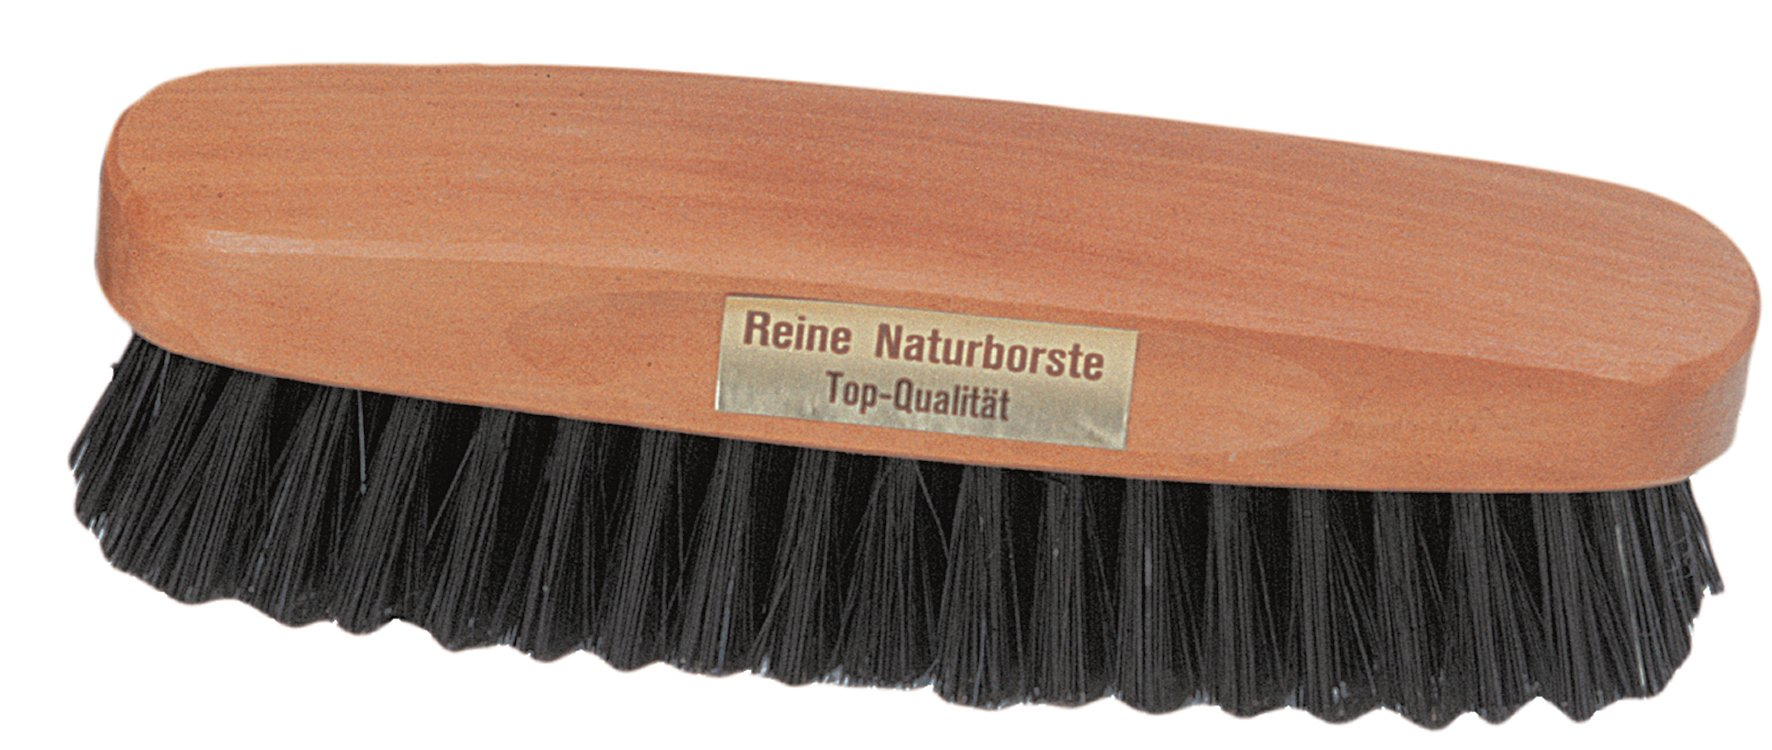 Redecker Natural Pig Bristle Clothes Brush with Pearwood Handle, 5-1/4-Inches